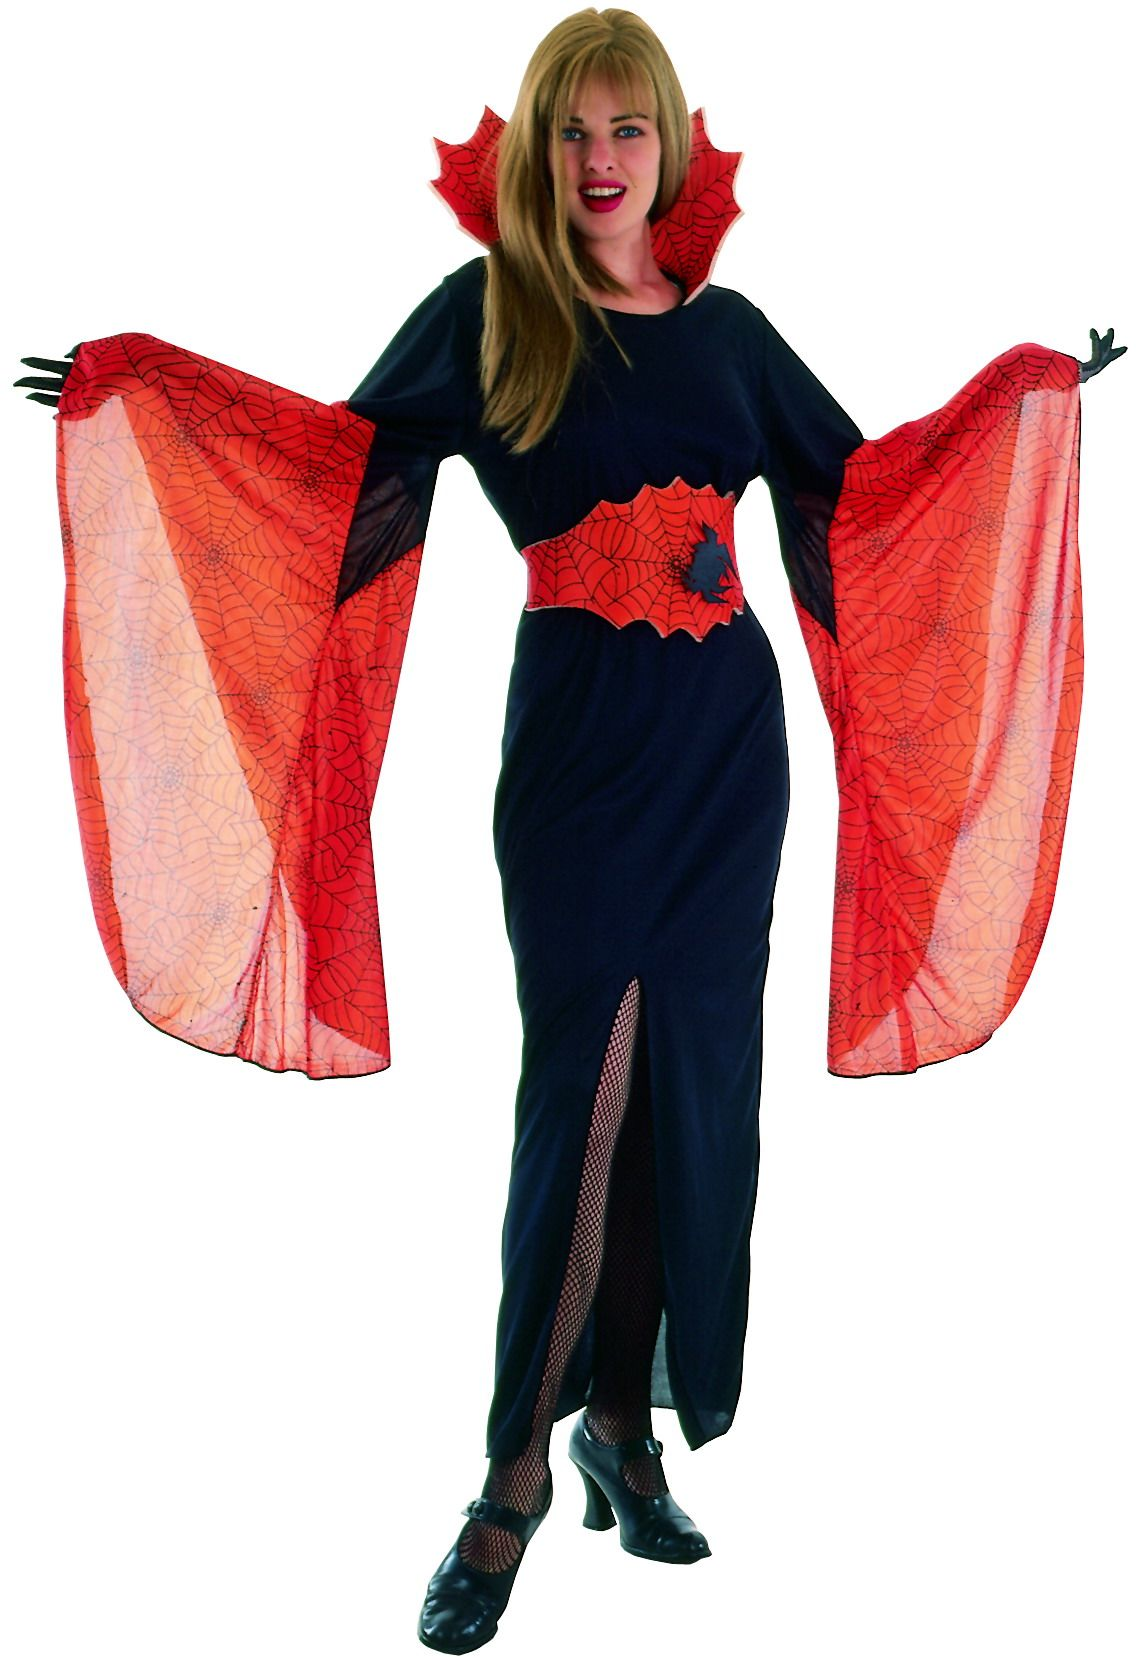 Fancy dress costumes vegaoo fancy dress and suit costumes for parties carnival halloween - Costume vampire femme ...